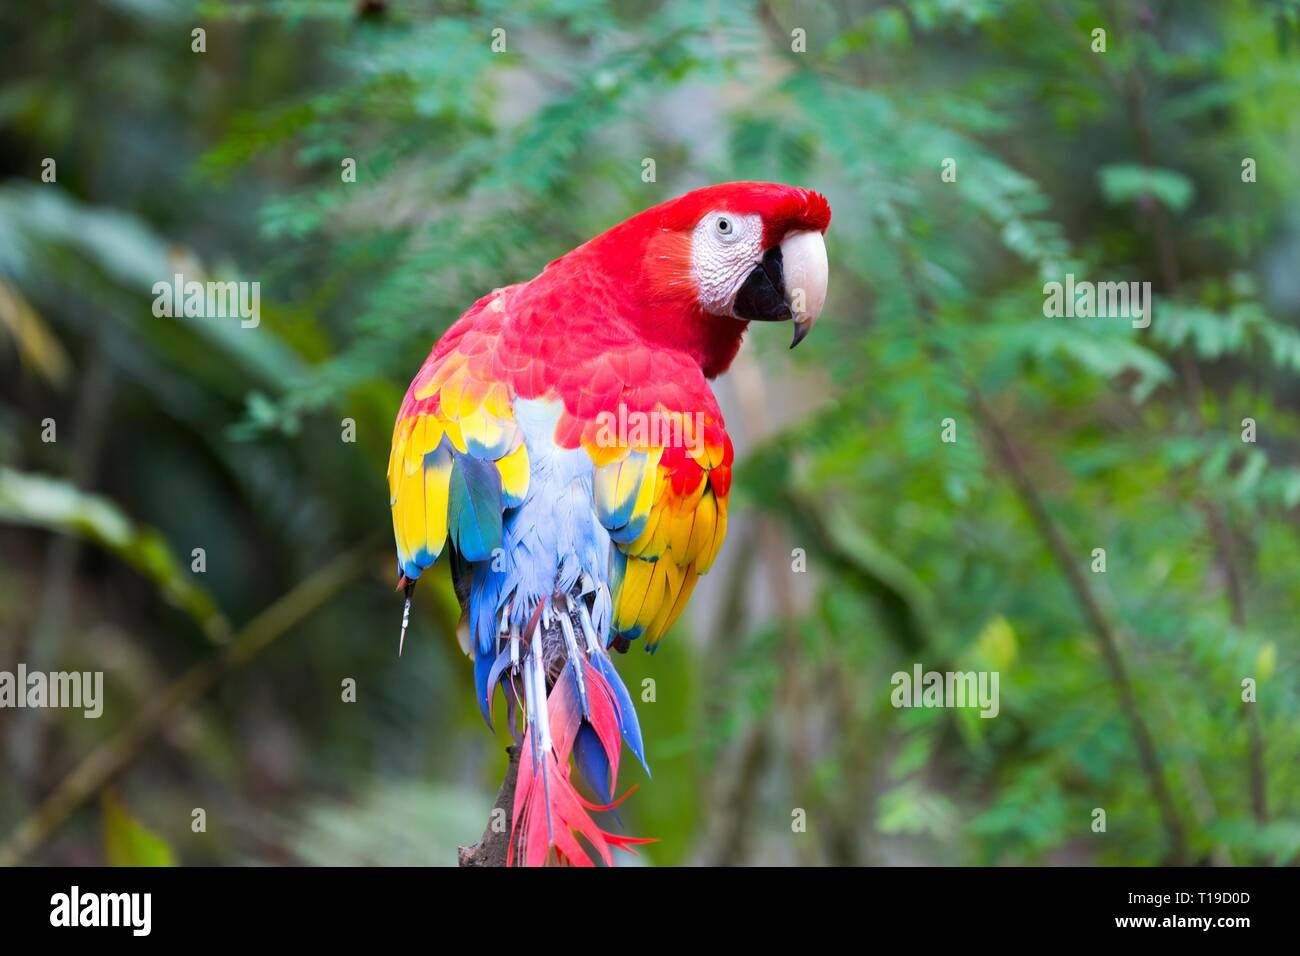 Exotic Red and Yellow Scarlet Parrot / Macaw Bird with Curious Look in the Eyes in Macaw Mountain Wildlife Reserve near Copan Ruinas in Honduras - Stock Image